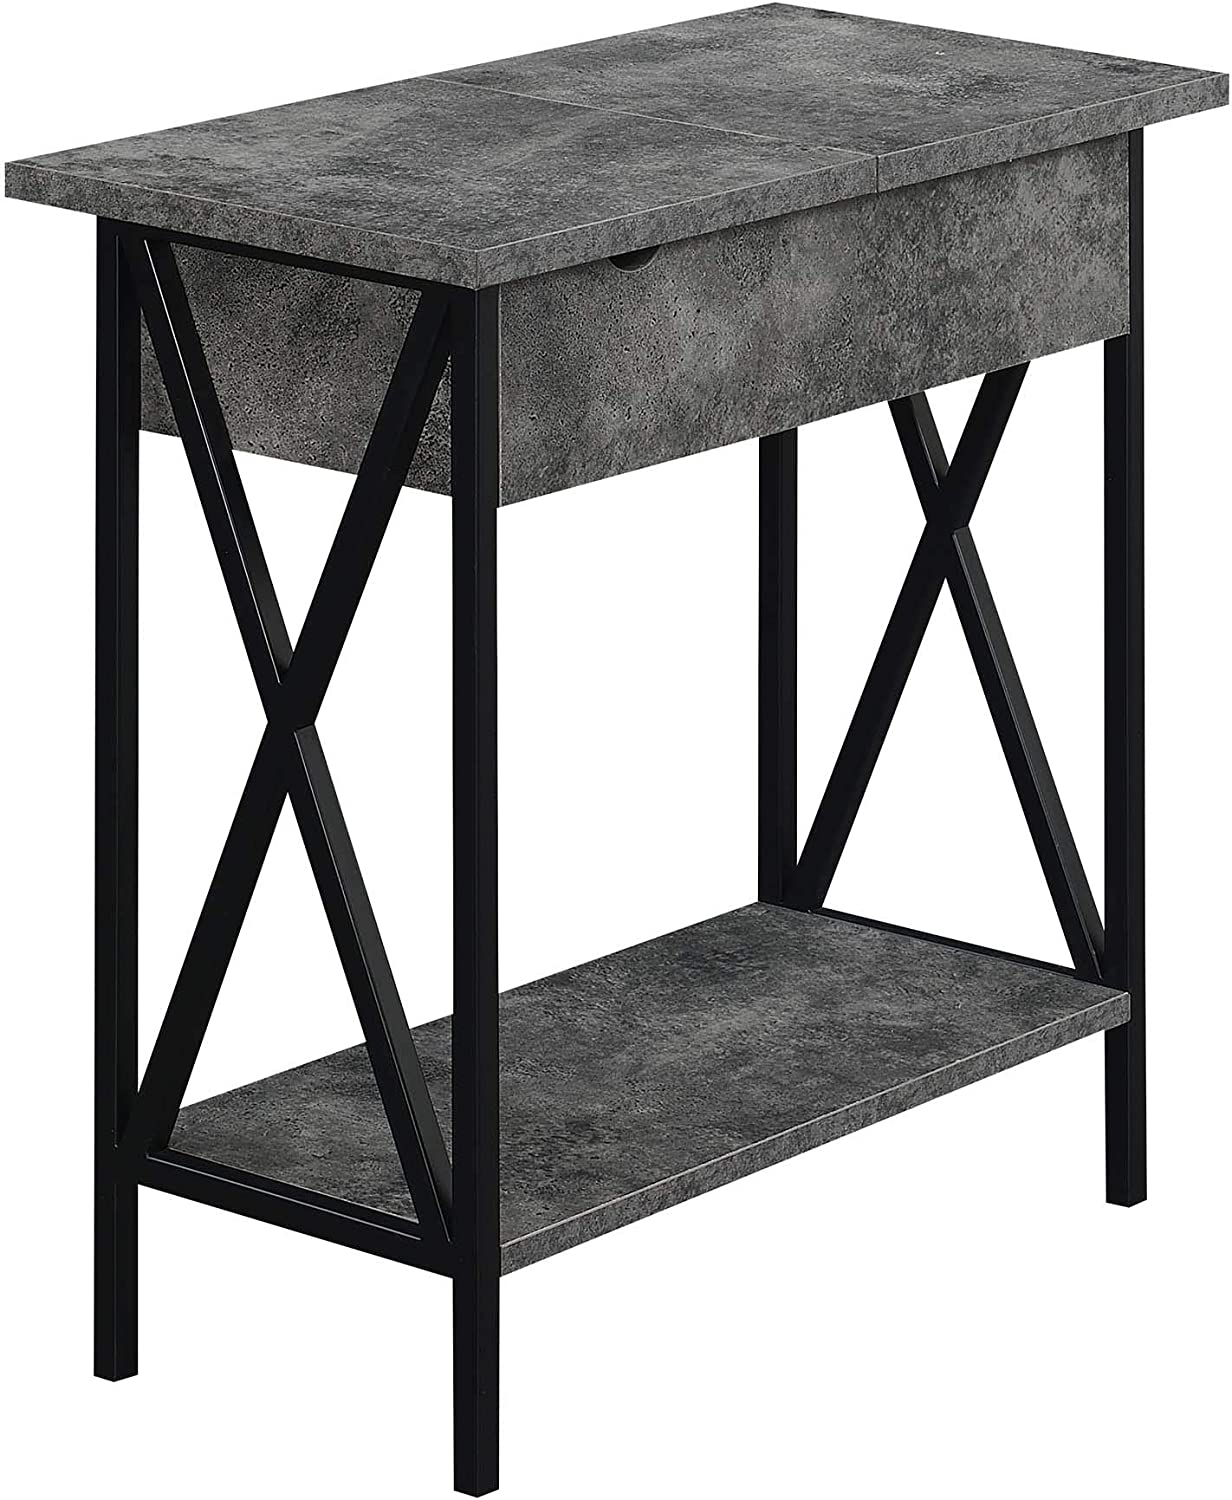 Convenience Concepts Tucson Flip Top End Table with Charging Station and Shelf, Cement/Black